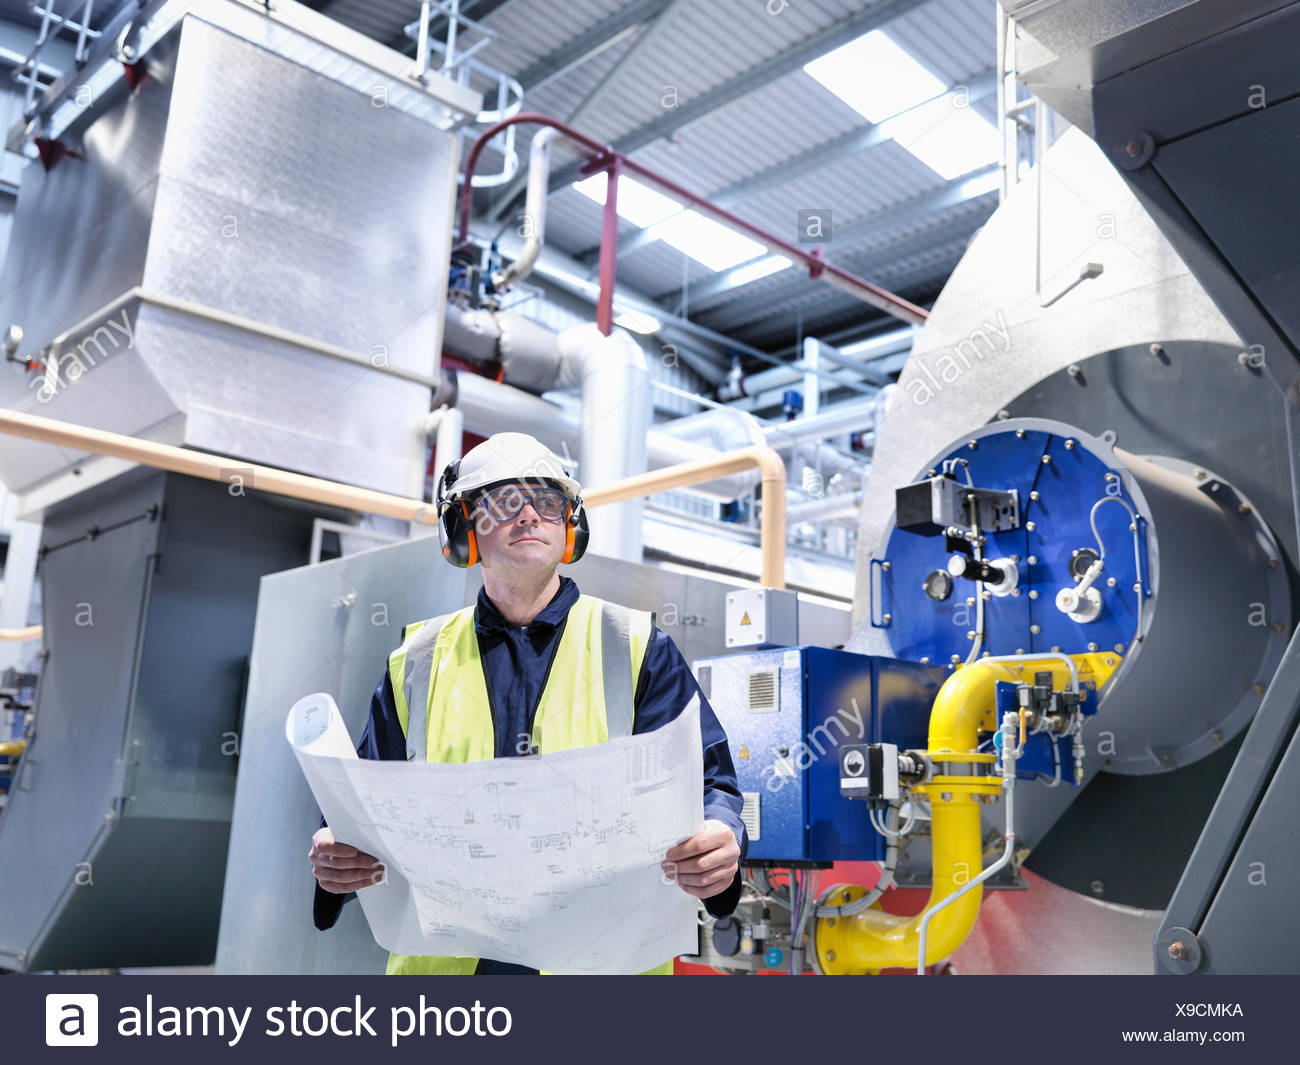 Gas Power Plant Schematic Electrical Wiring Diagrams Coal Diagram Worker With Drawings In Fired Station Stock